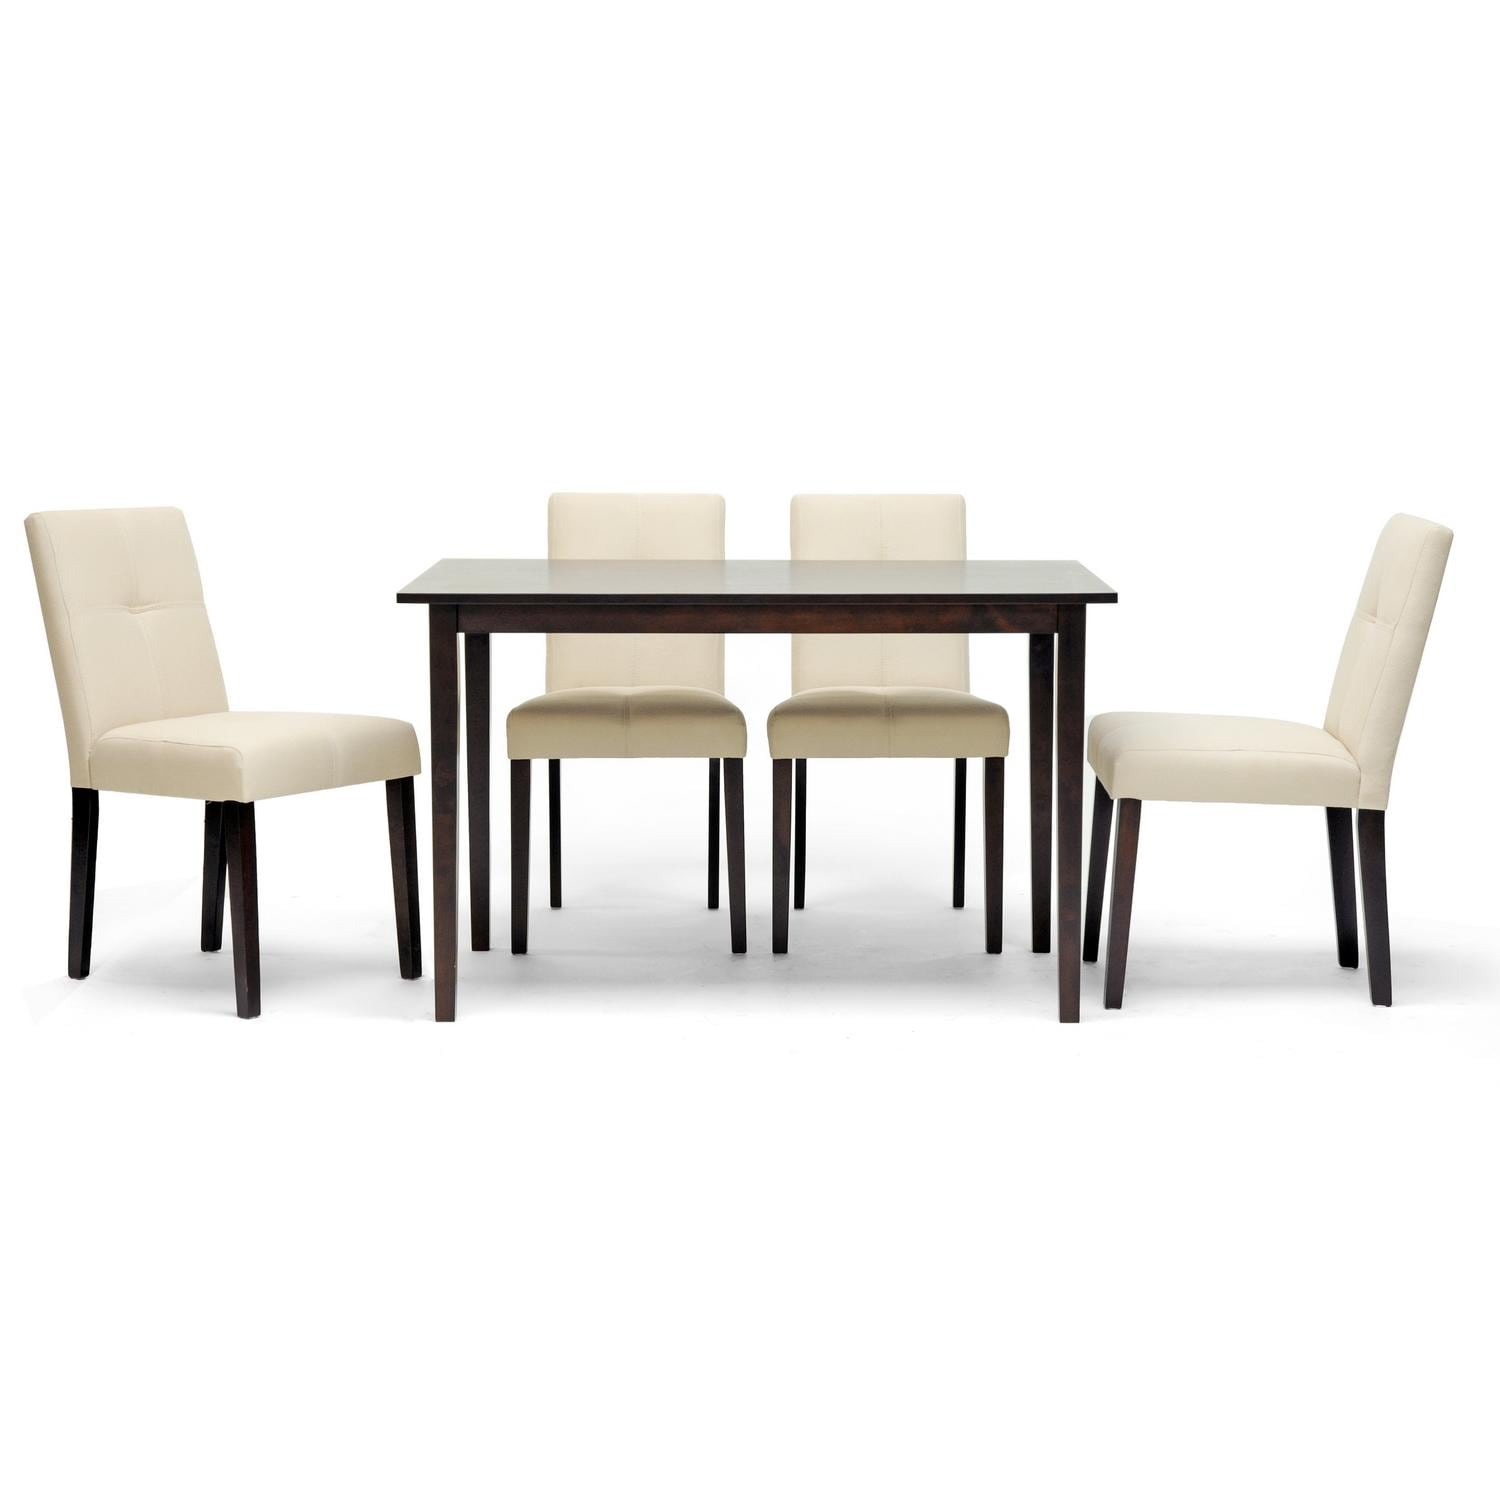 Baxton Studio Elsa Brown Wood 5-Piece Modern Dining Set